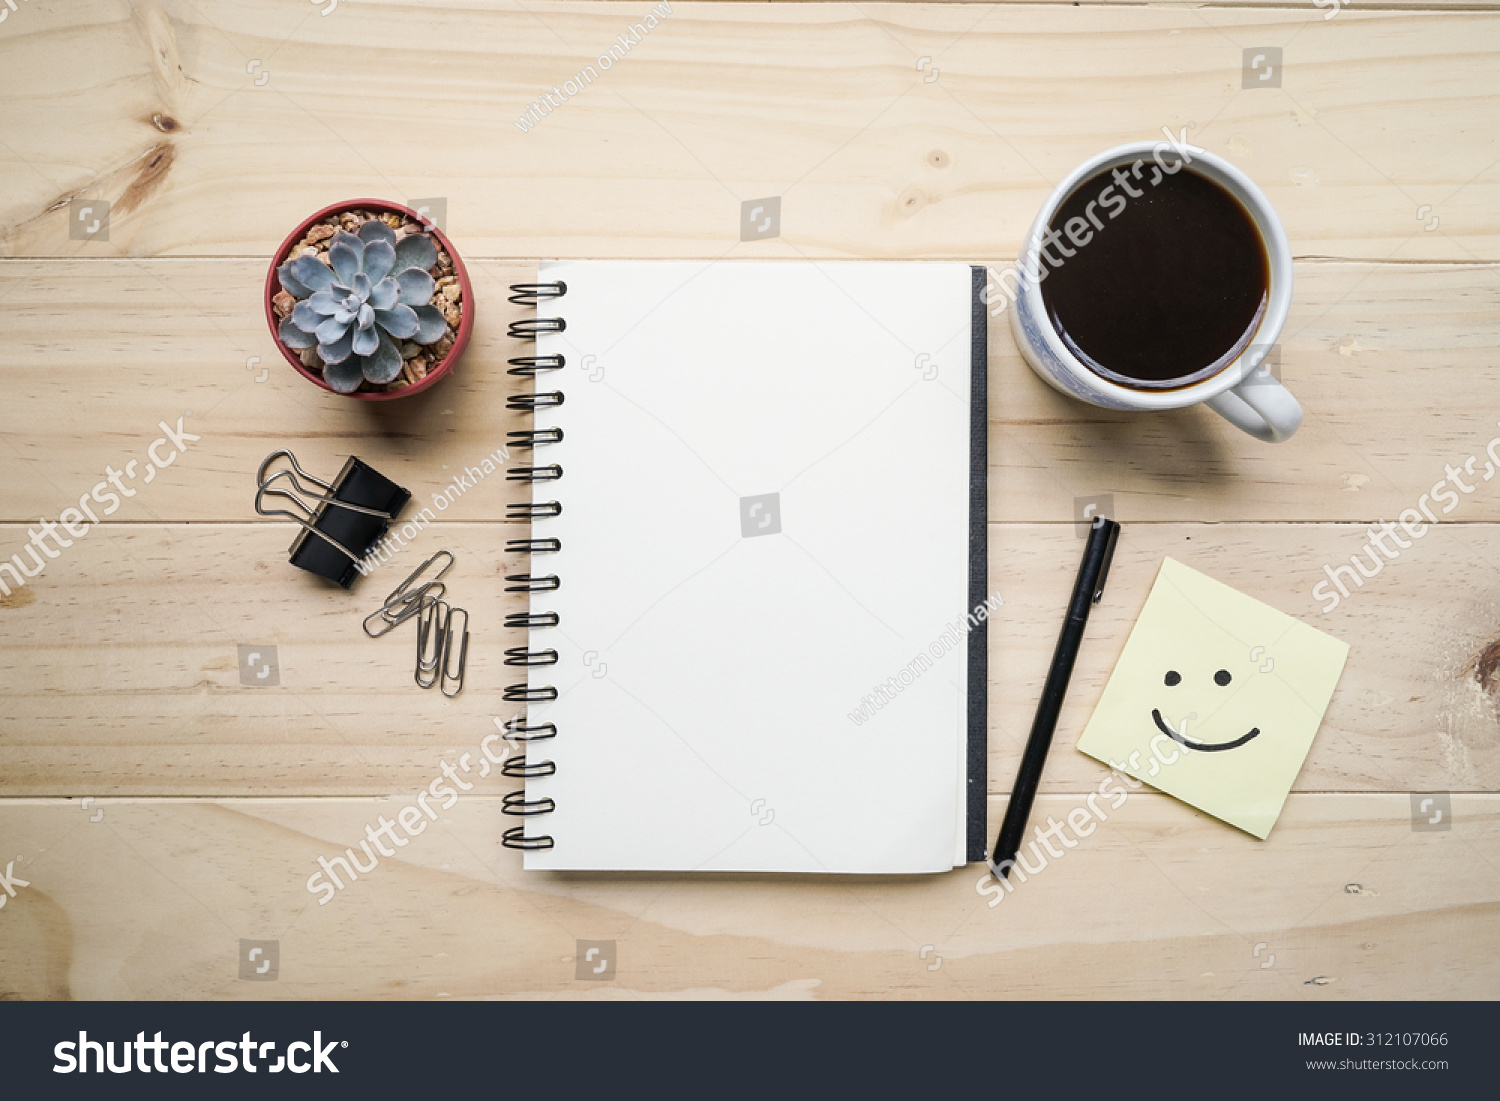 blank opened notebook cup coffee memo stock photo 312107066 blank opened notebook cup of coffee and memo note on wooden table top view